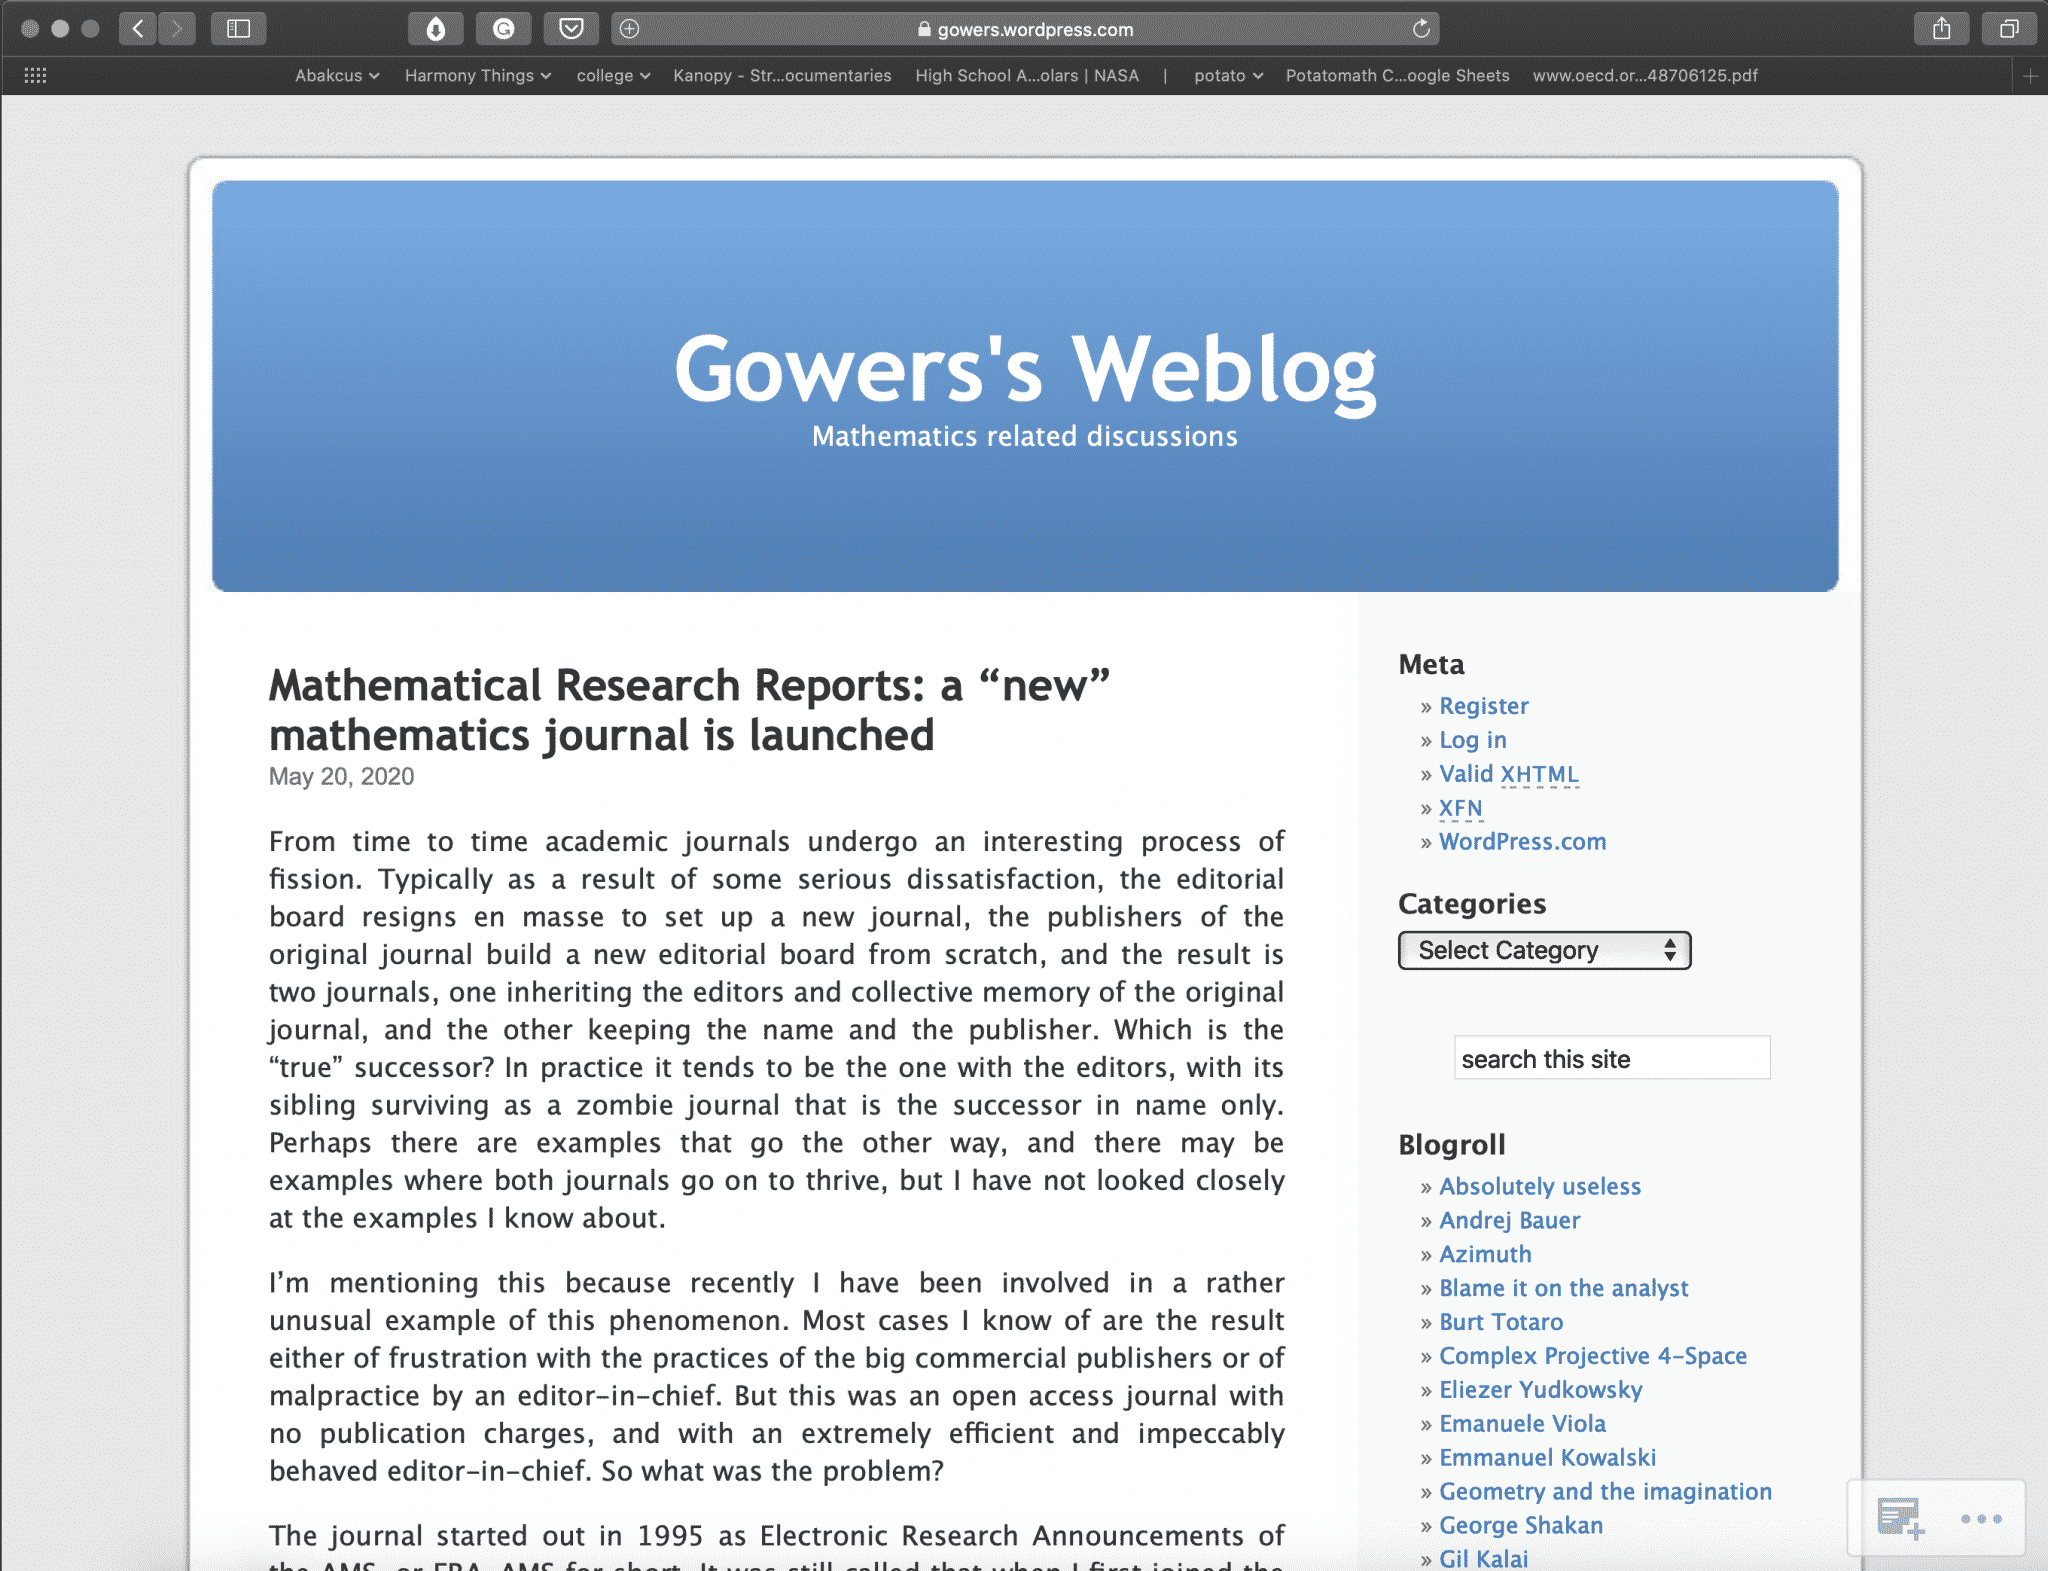 Gowers's Weblog | Best Math Blogs Directory | Abakcus